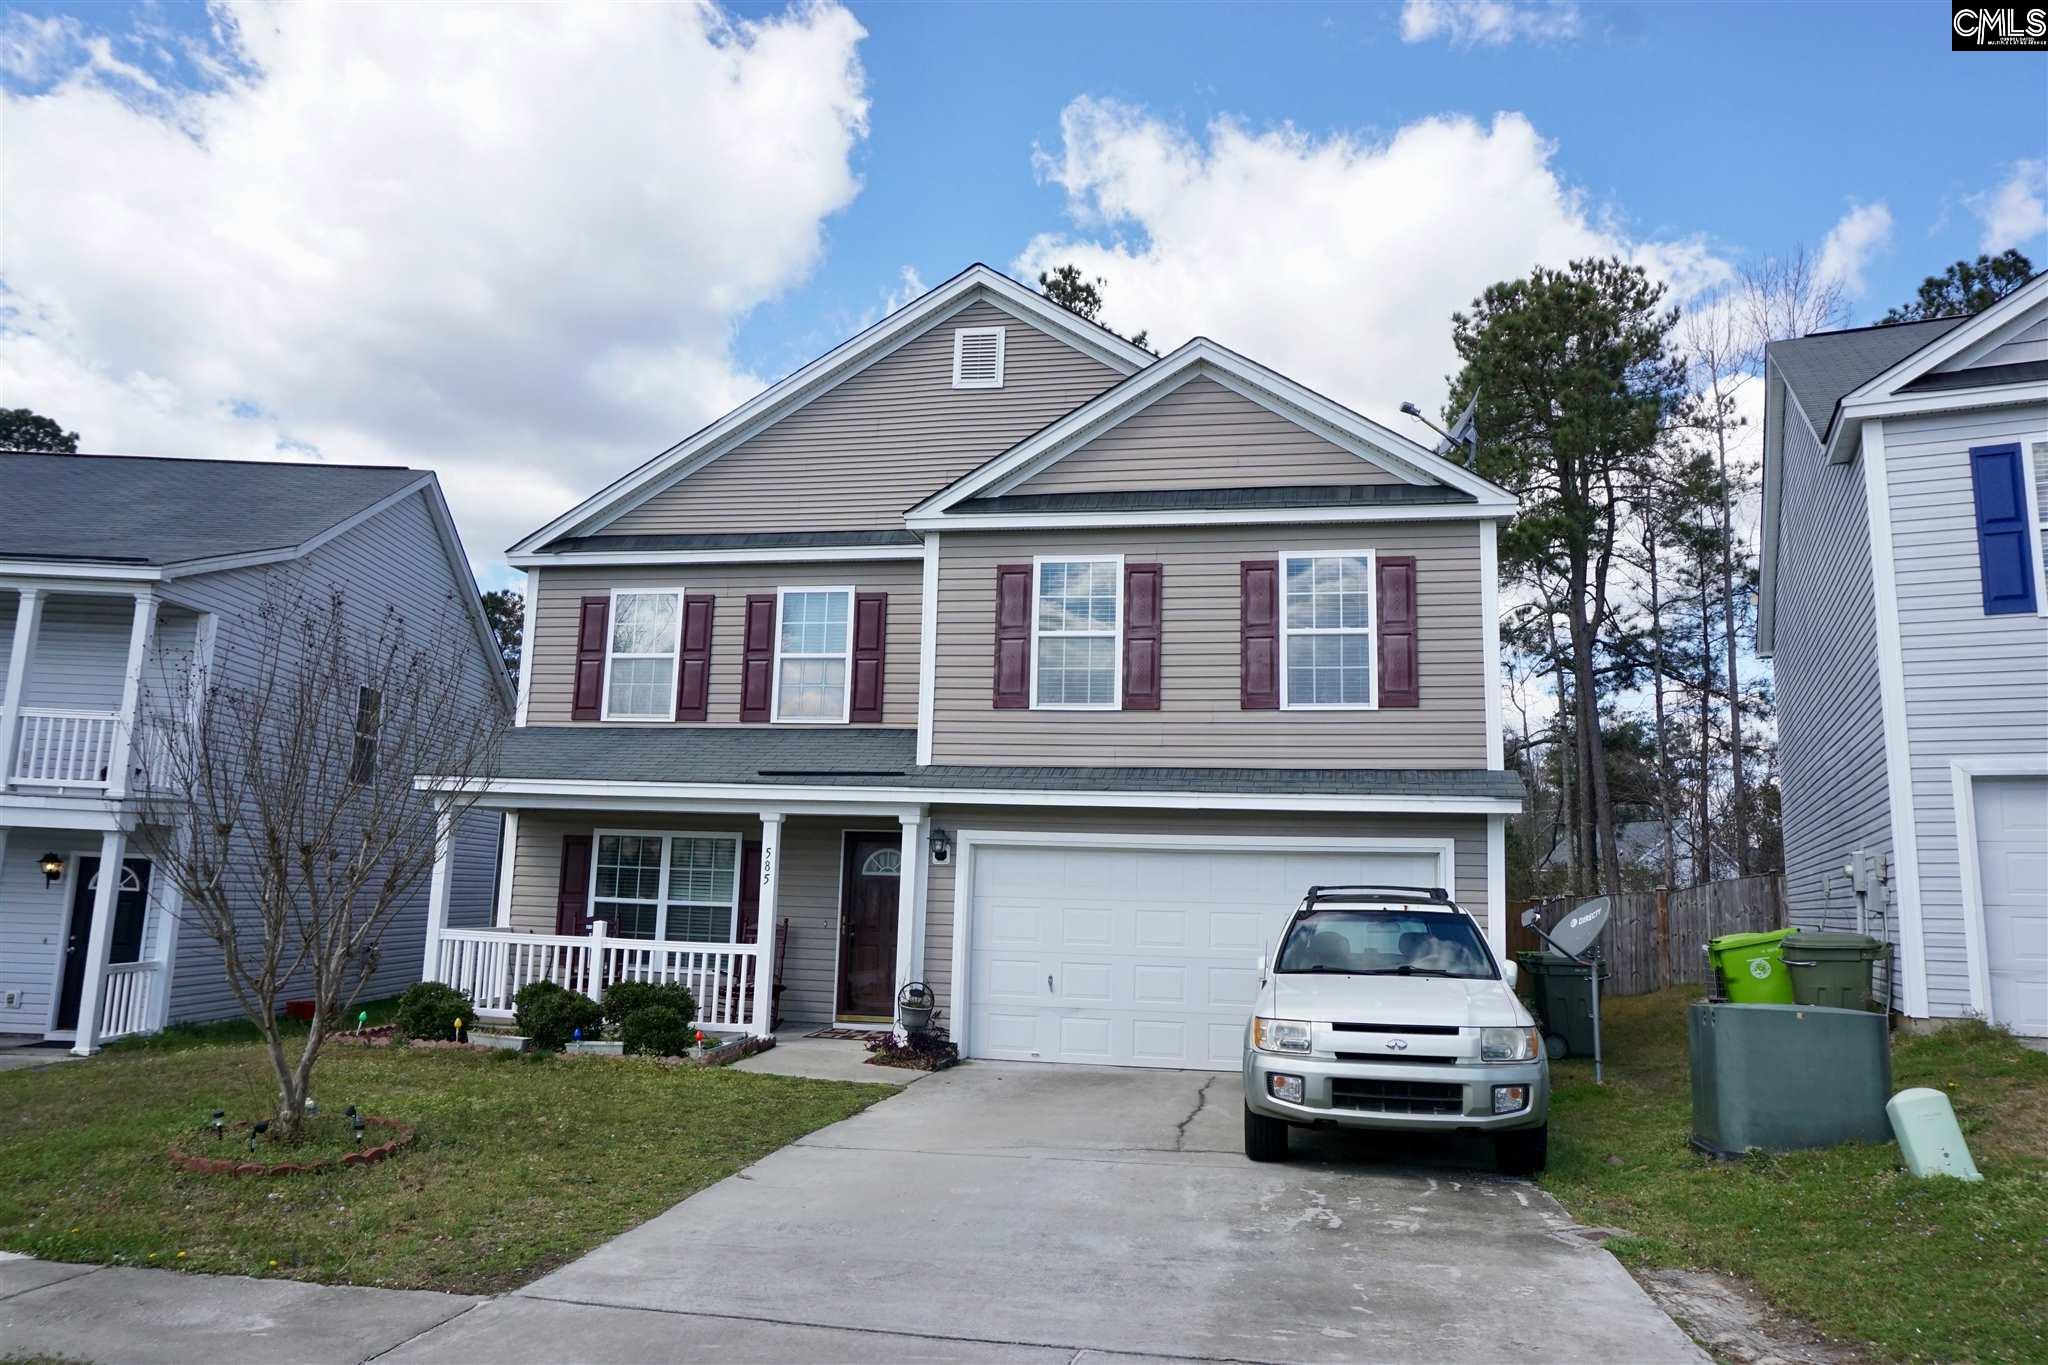 585 Heron Glen Columbia, SC 29229-8084